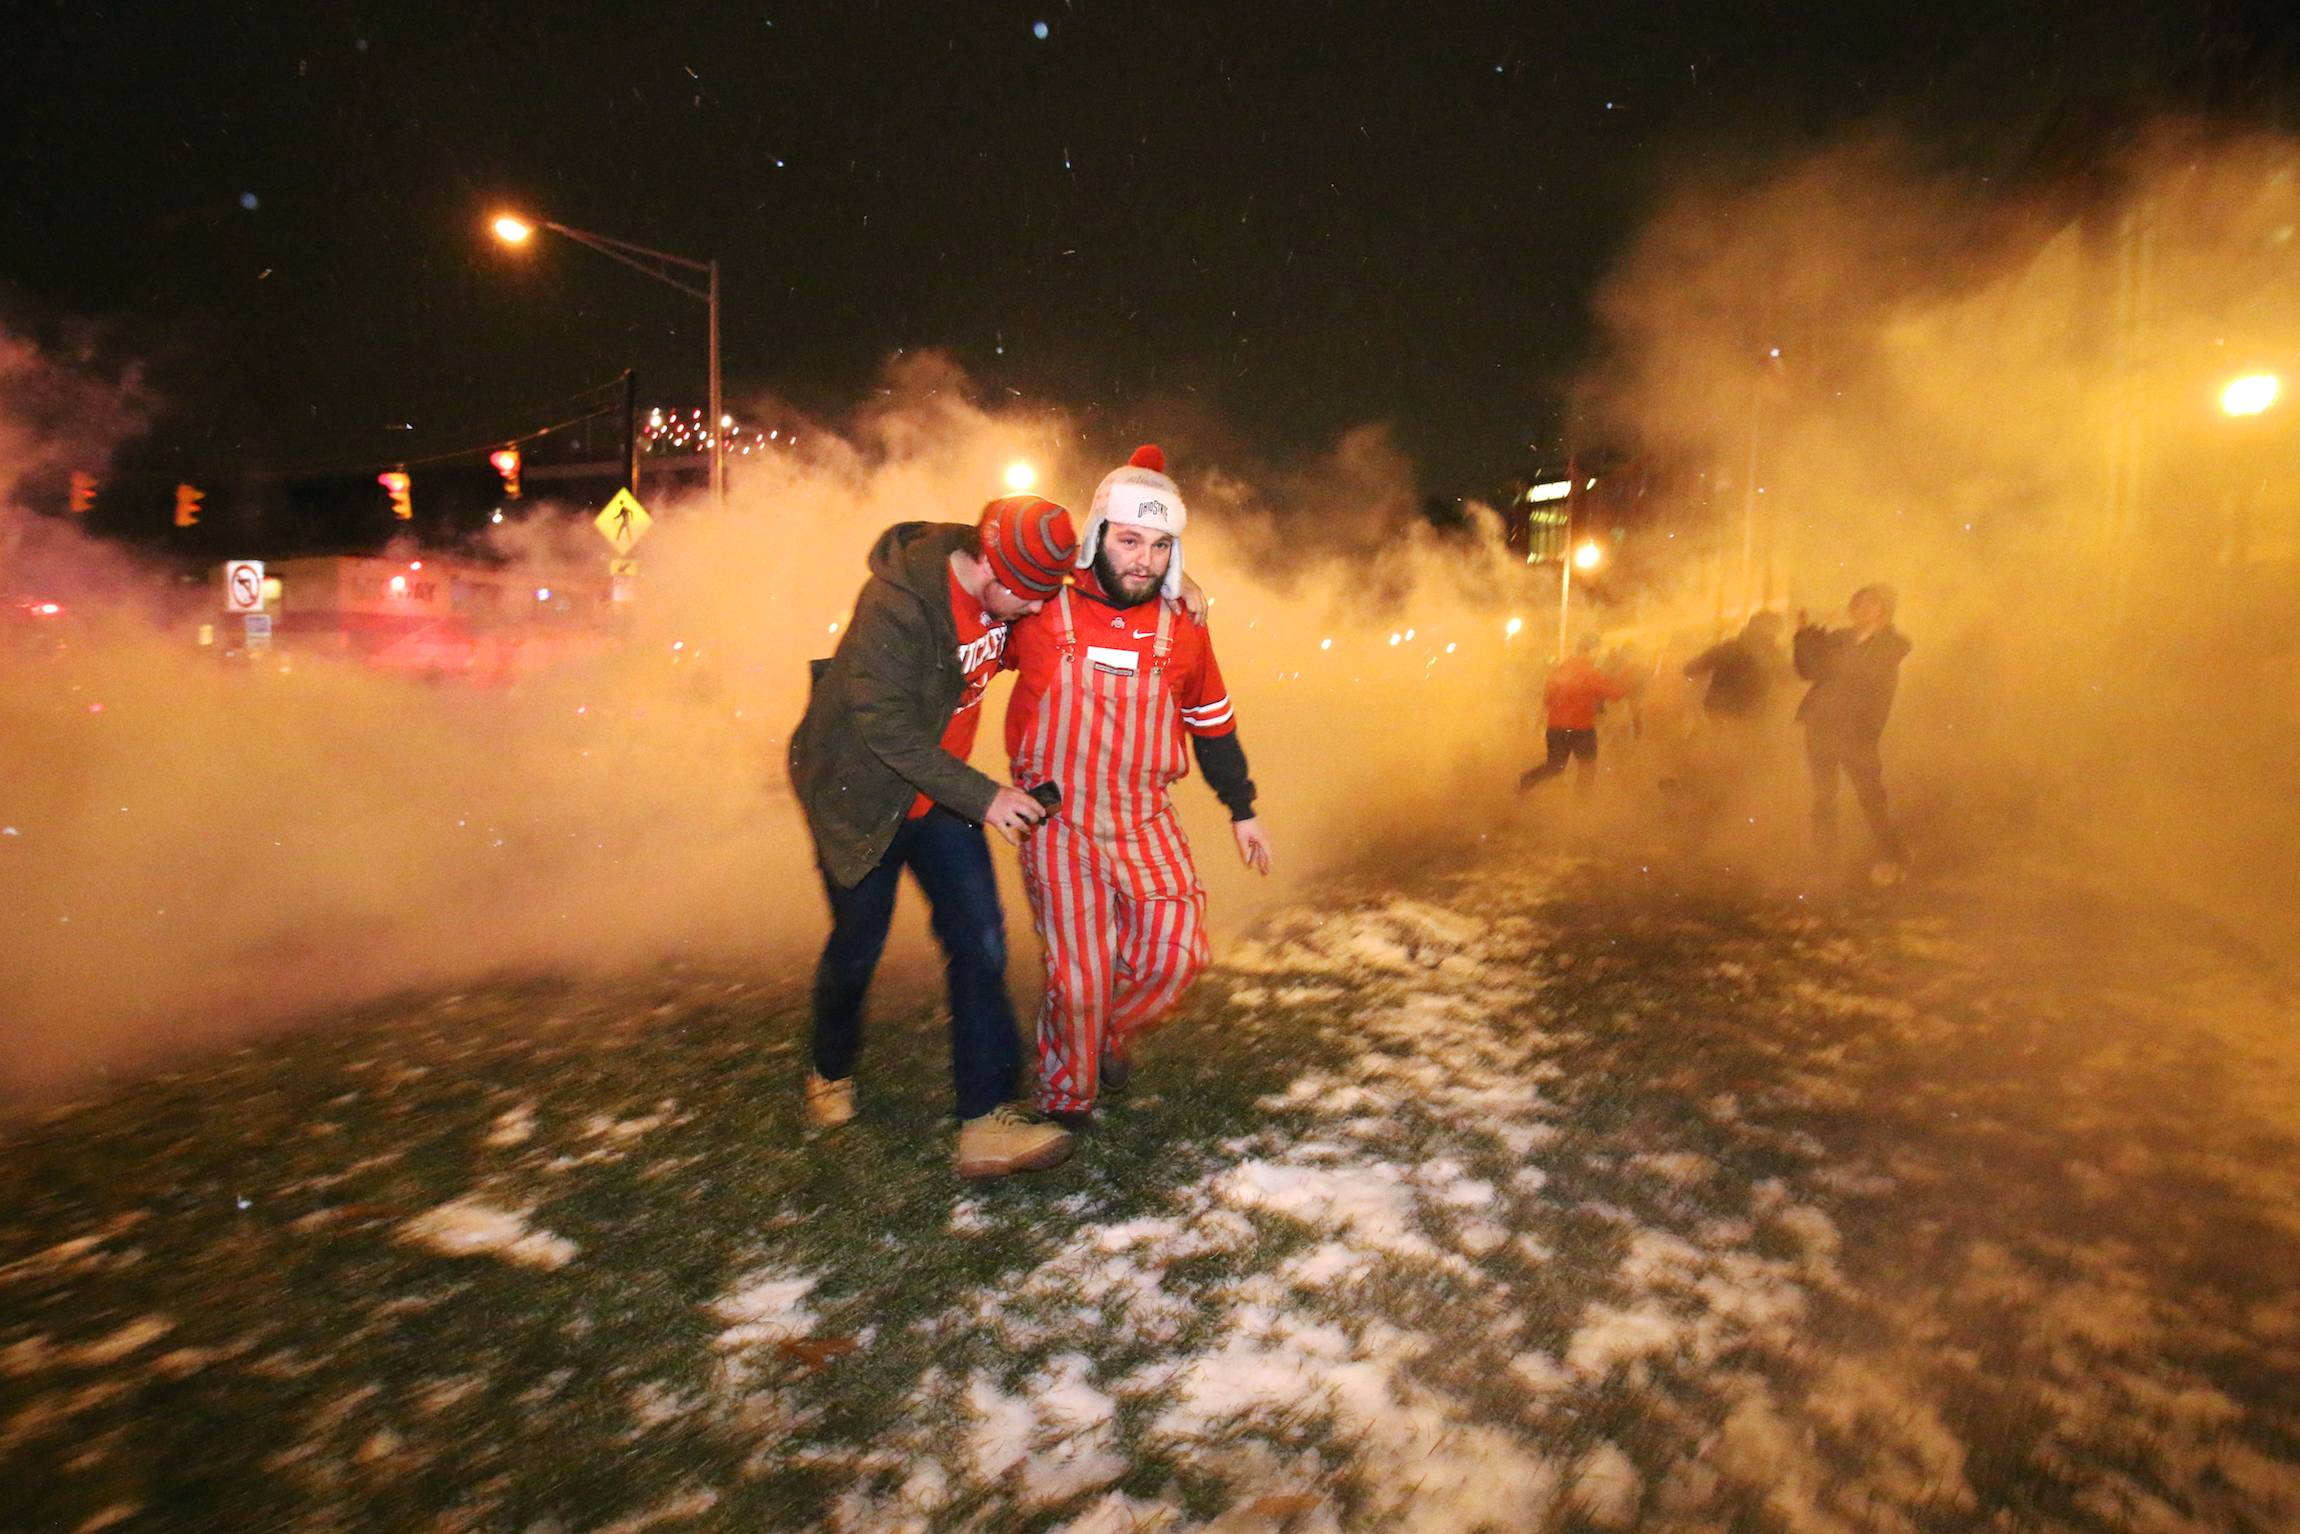 People walk away from clouds of tear gas in Columbus, Ohio, Jan. 12, 2015, as crowds took to the street to celebrate Ohio State's victory at the Football National Championship game in Texas.